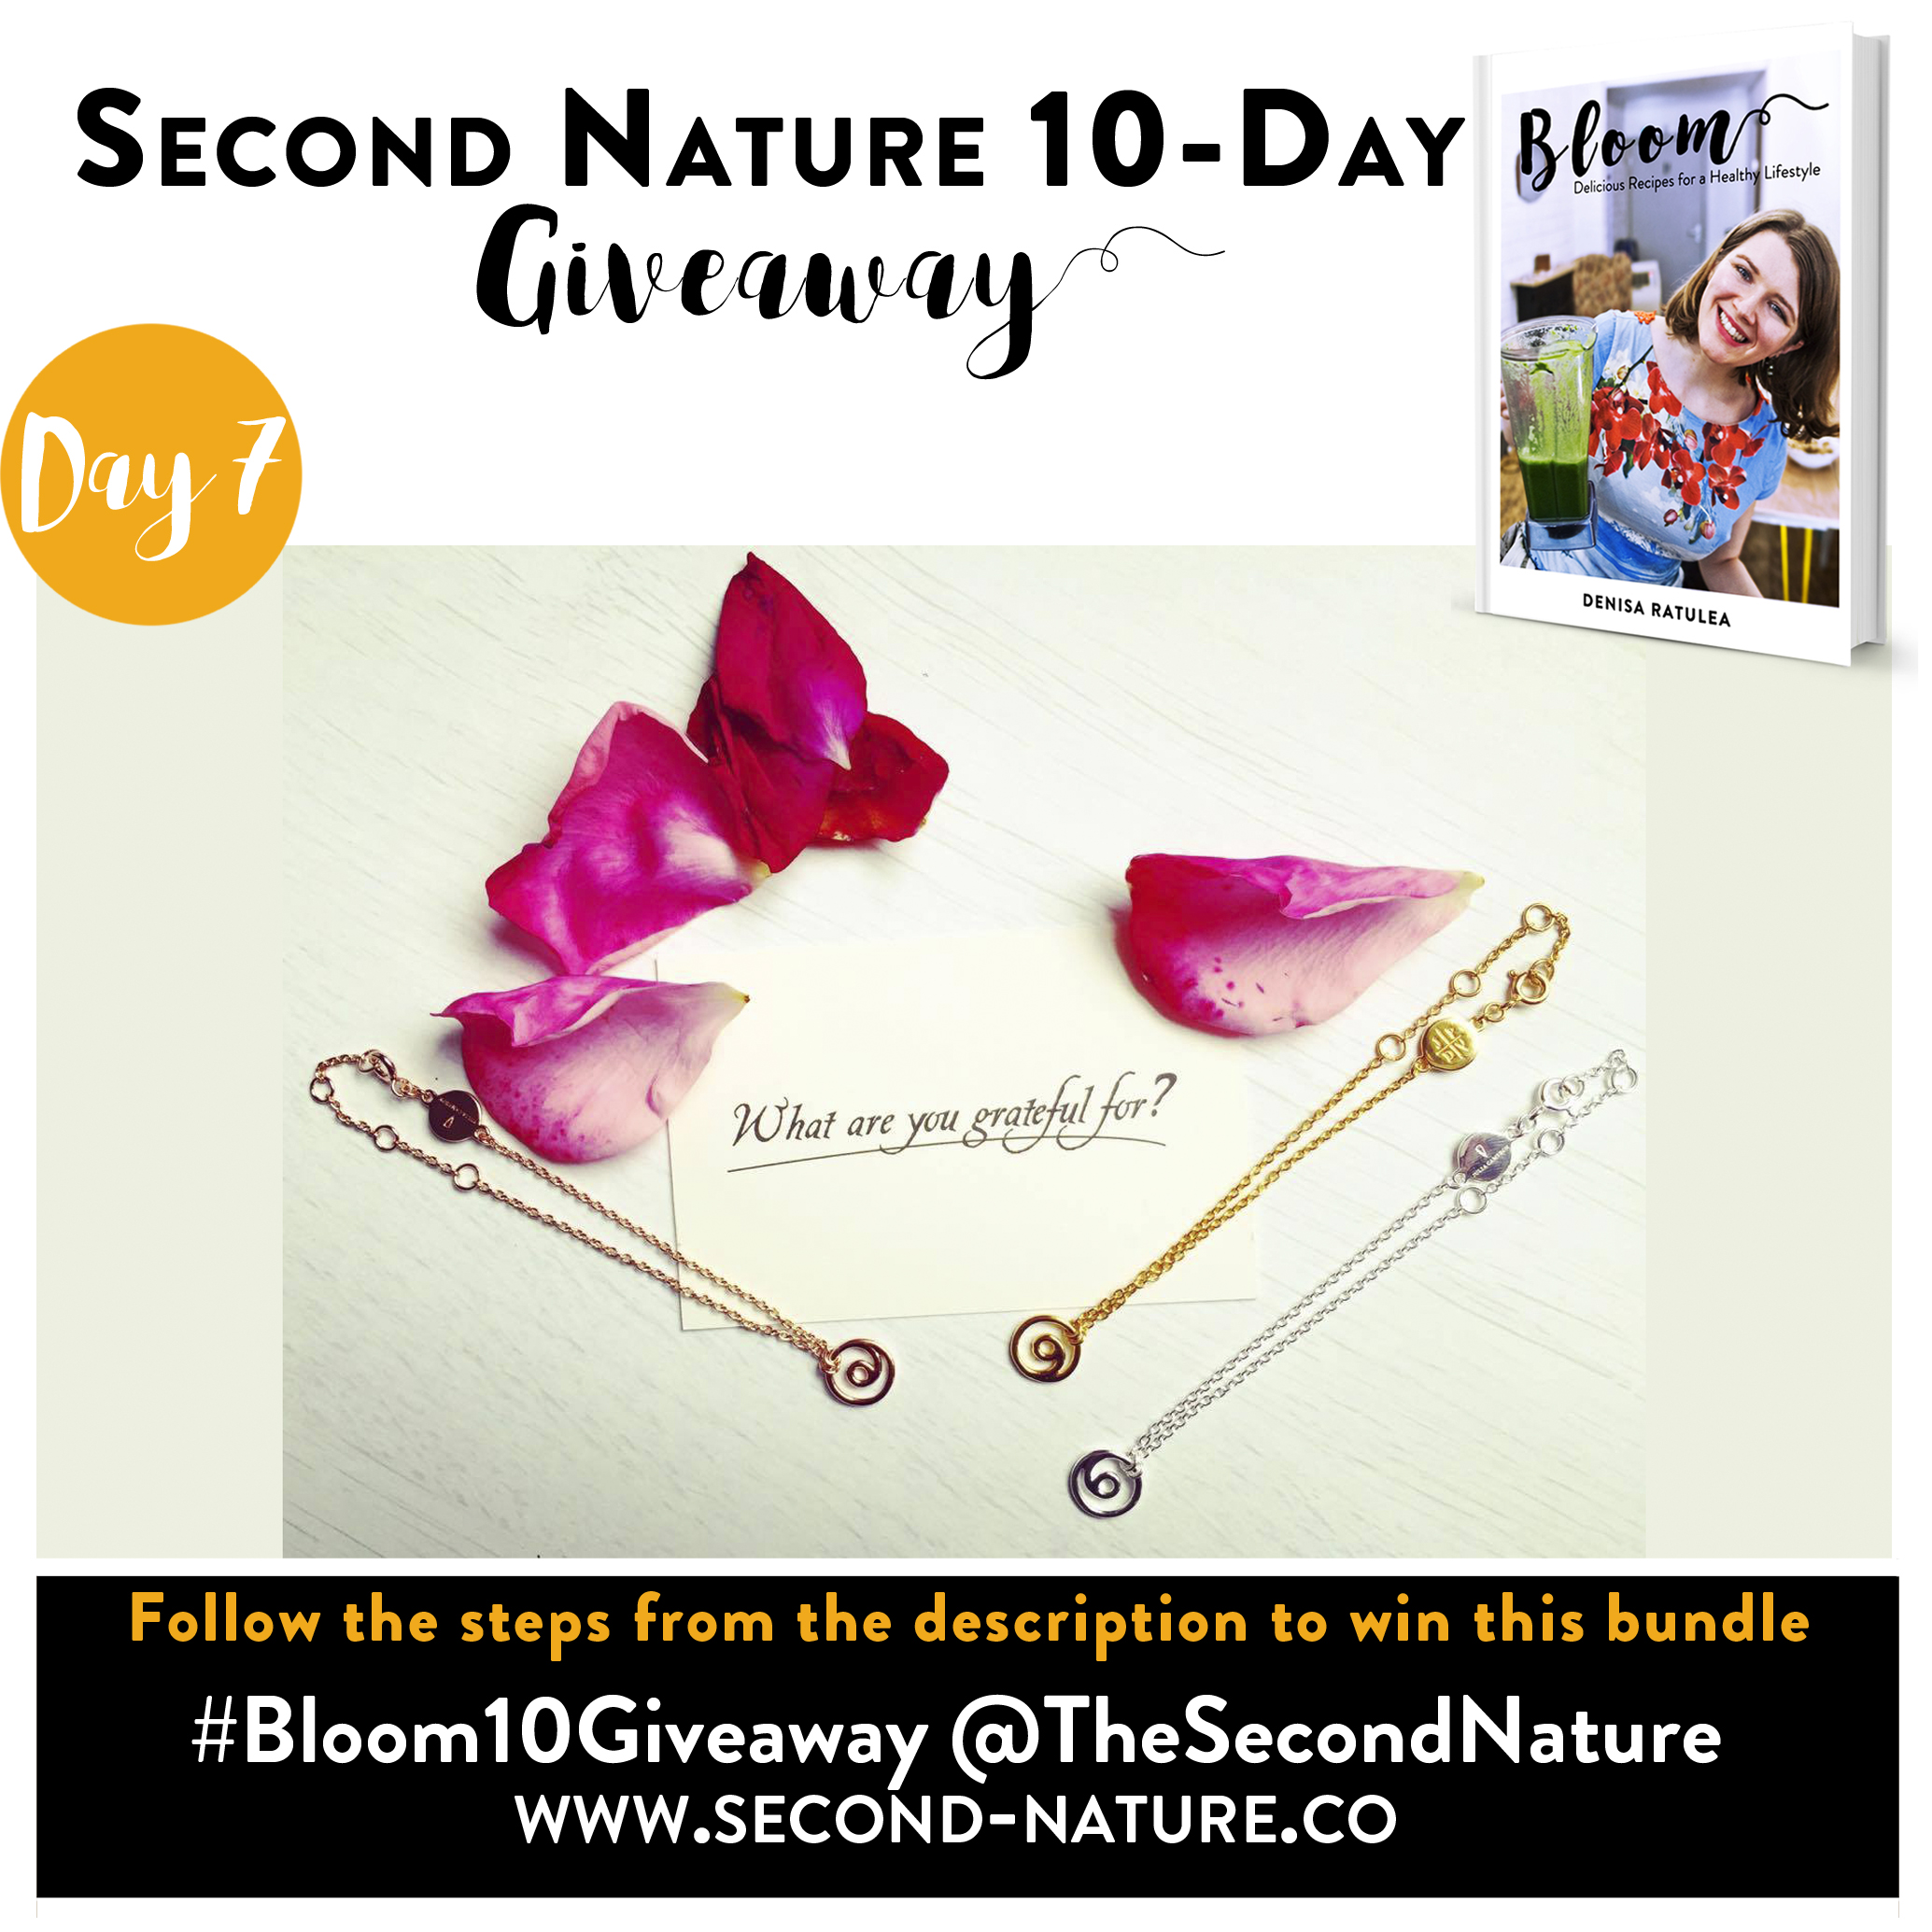 Day 7 Bloom Giveaway